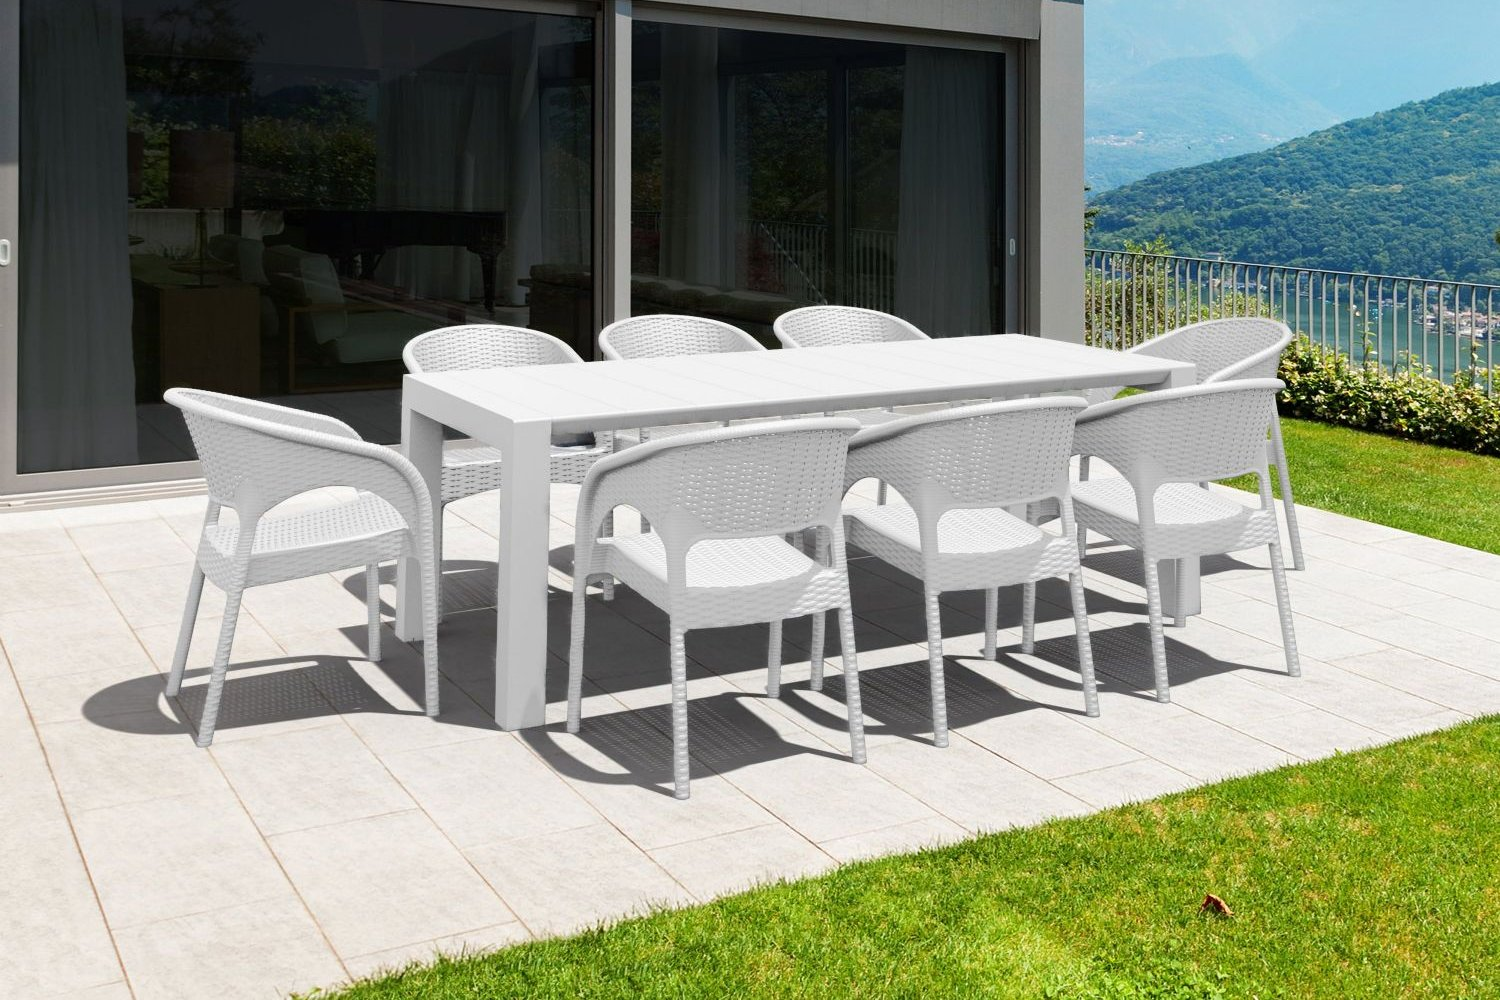 Panama Extendable Patio Dining Set 9 piece Dark Gray ISP8083S-DG - 3